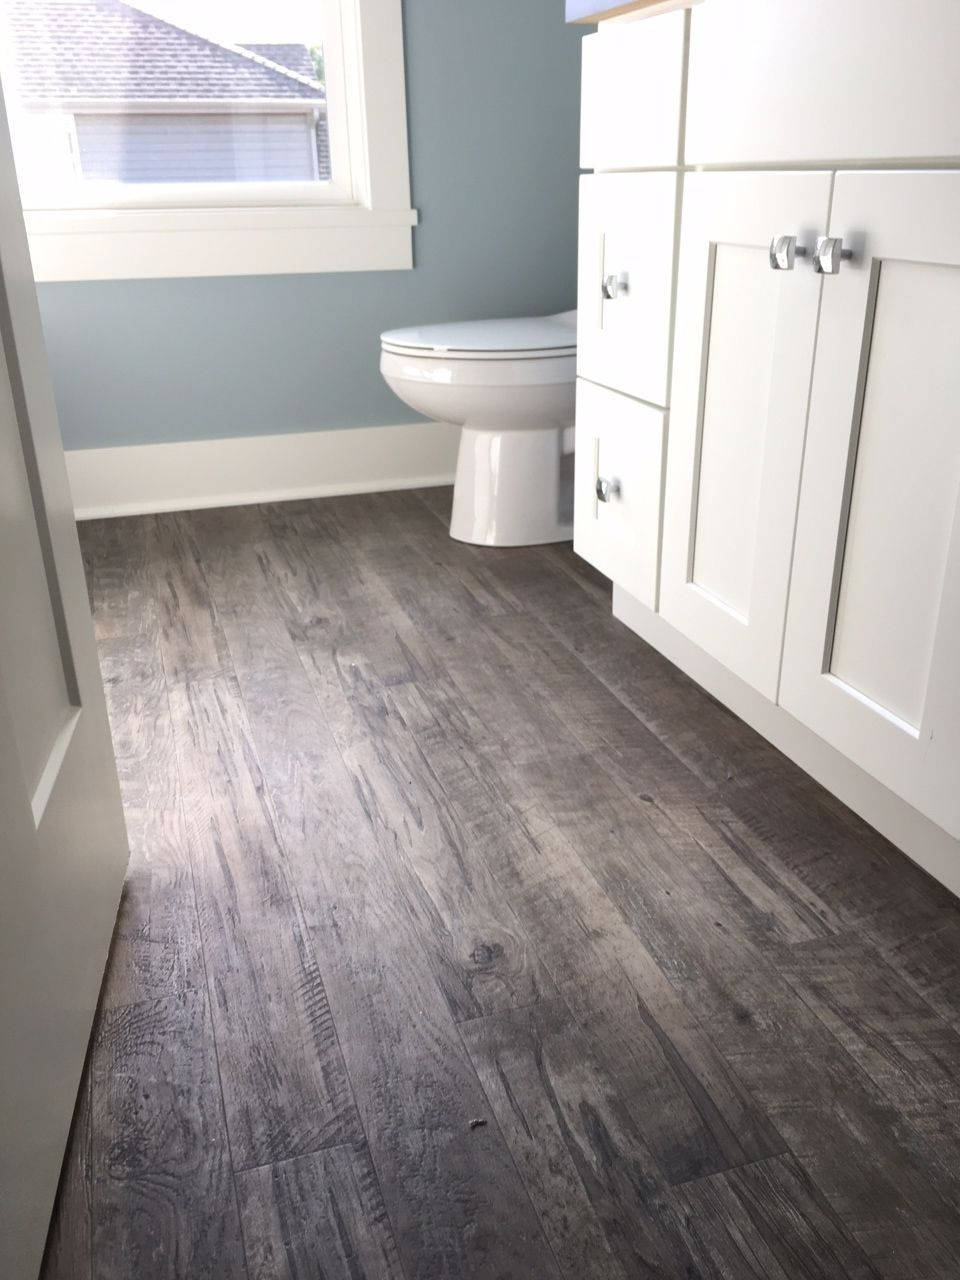 51 Old Fashioned Wood Flooring In Bathroom Composition Wood